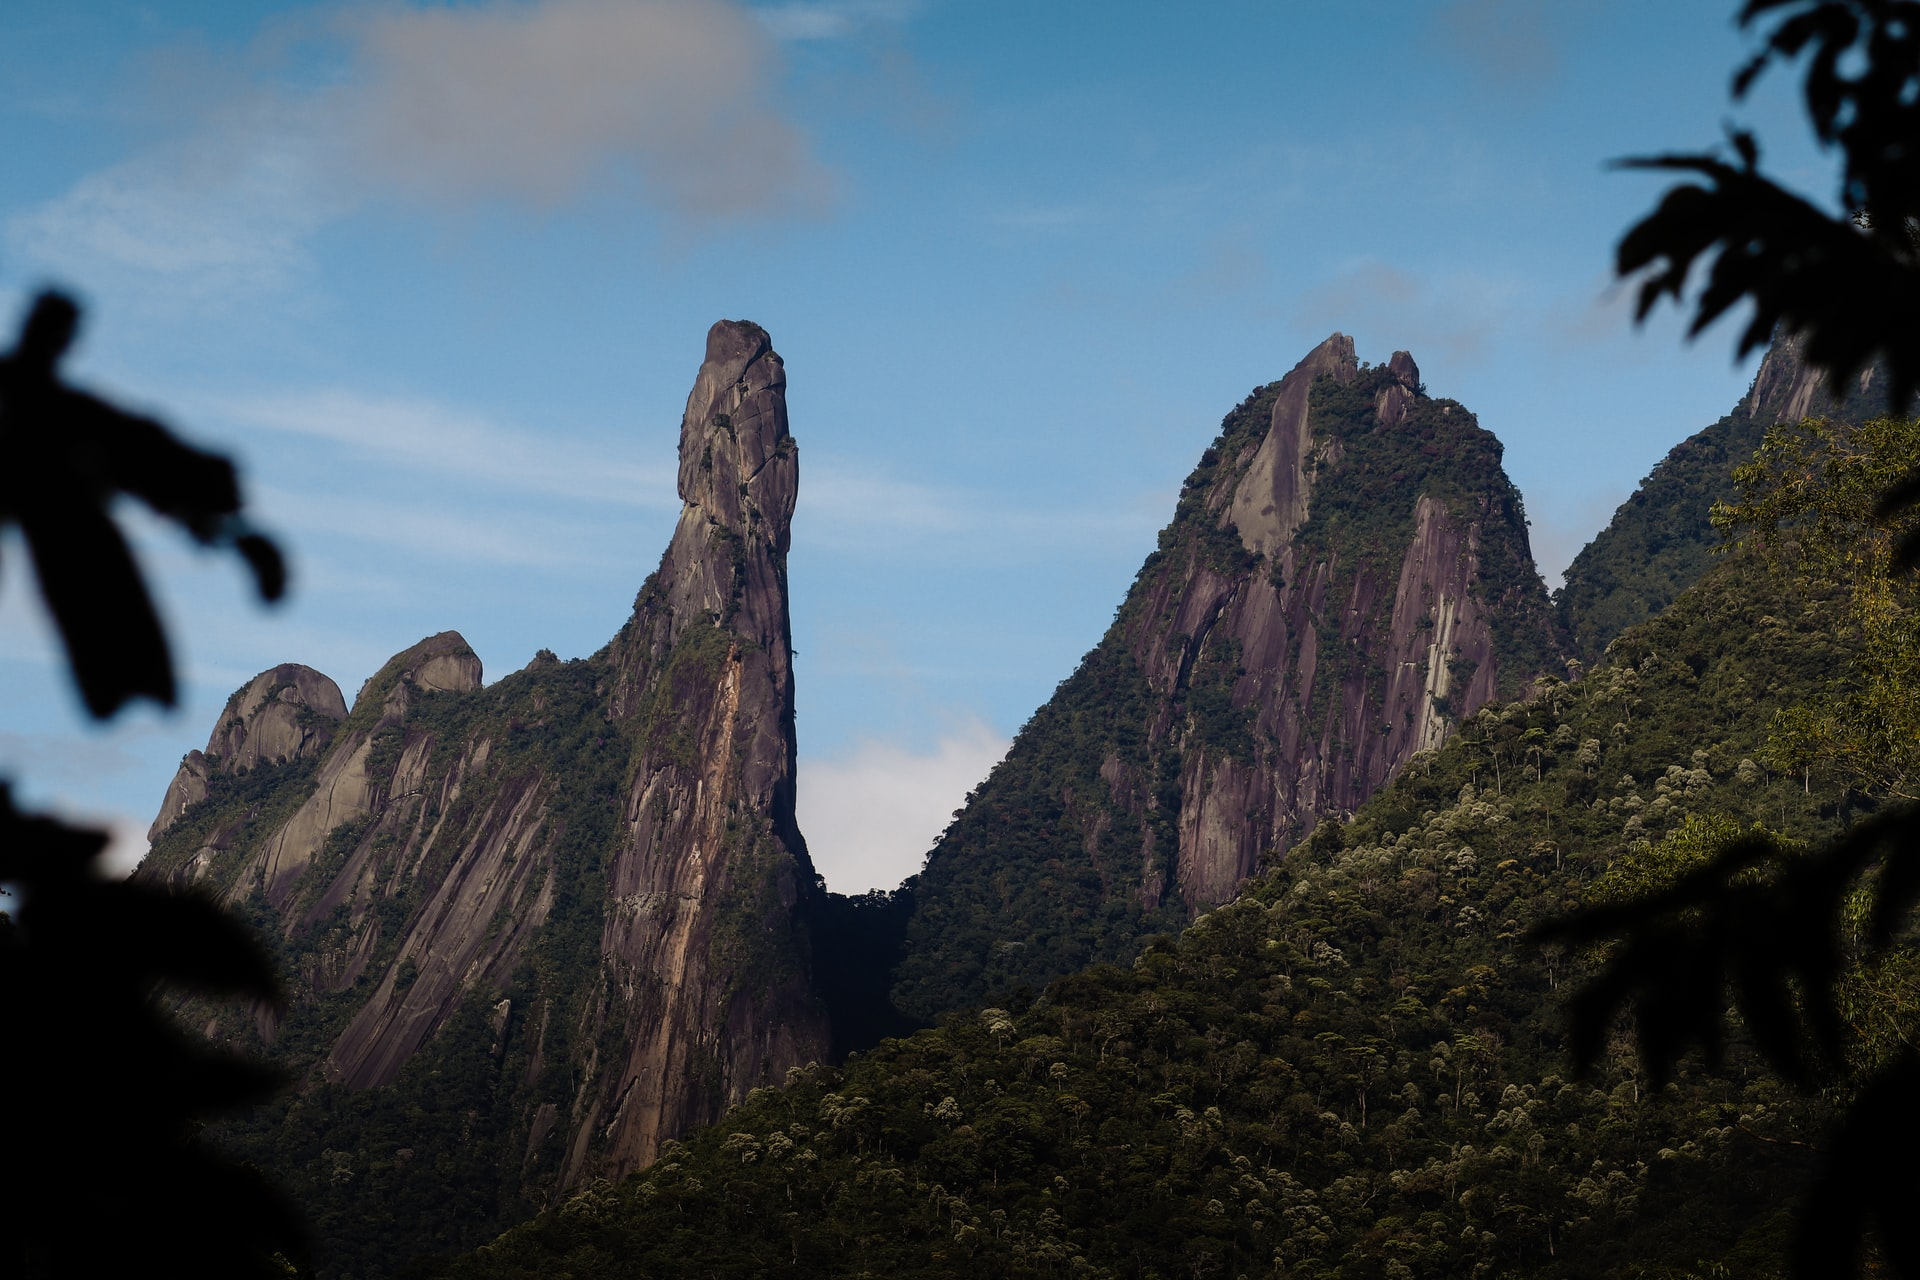 Teresópolis city and it's natural charms - Parks, Trails & Waterfalls